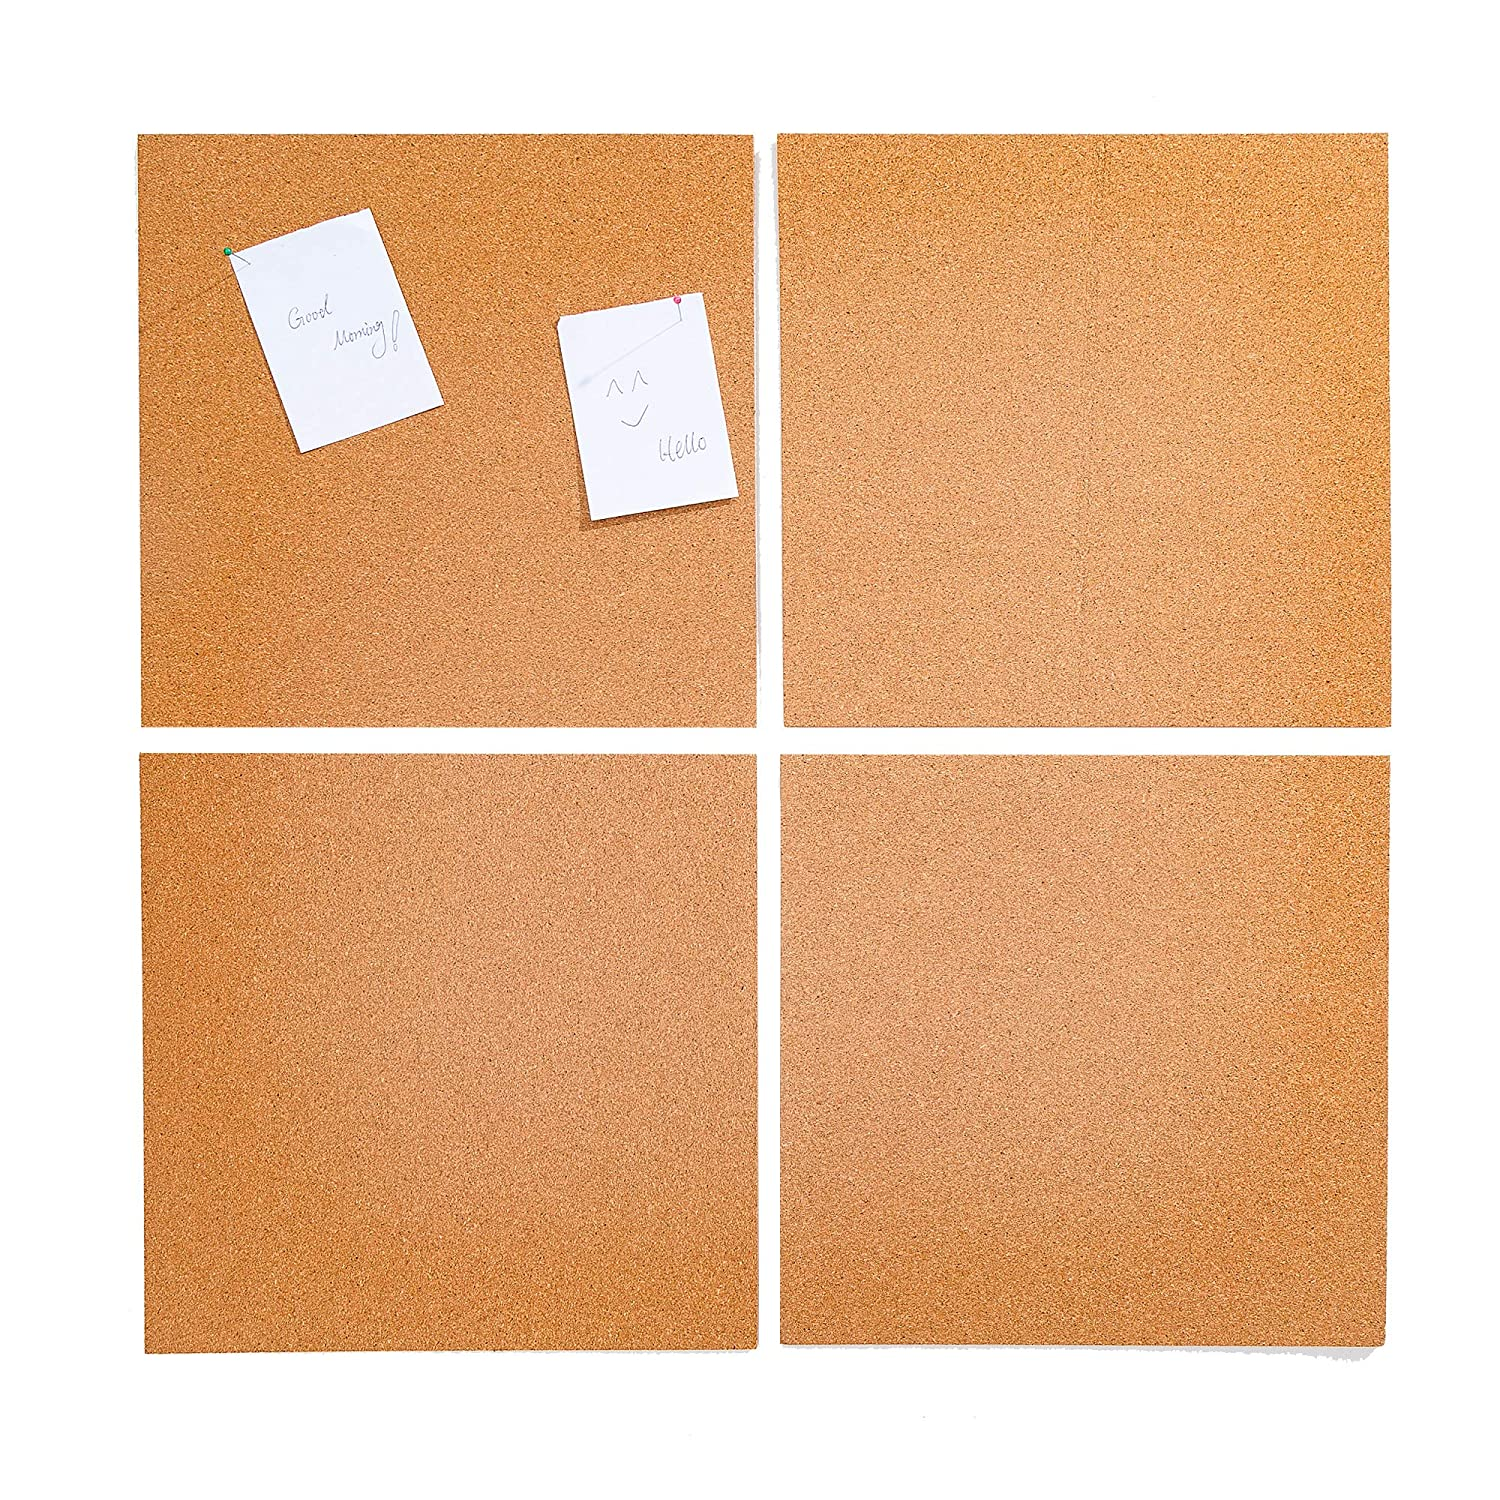 4 Pack Cork Tile Set 12 x 12 x 12 Inches Frame Less Mini Wall Bulletin Boards for Crafts Home Office Xena X-36183-1-HME1